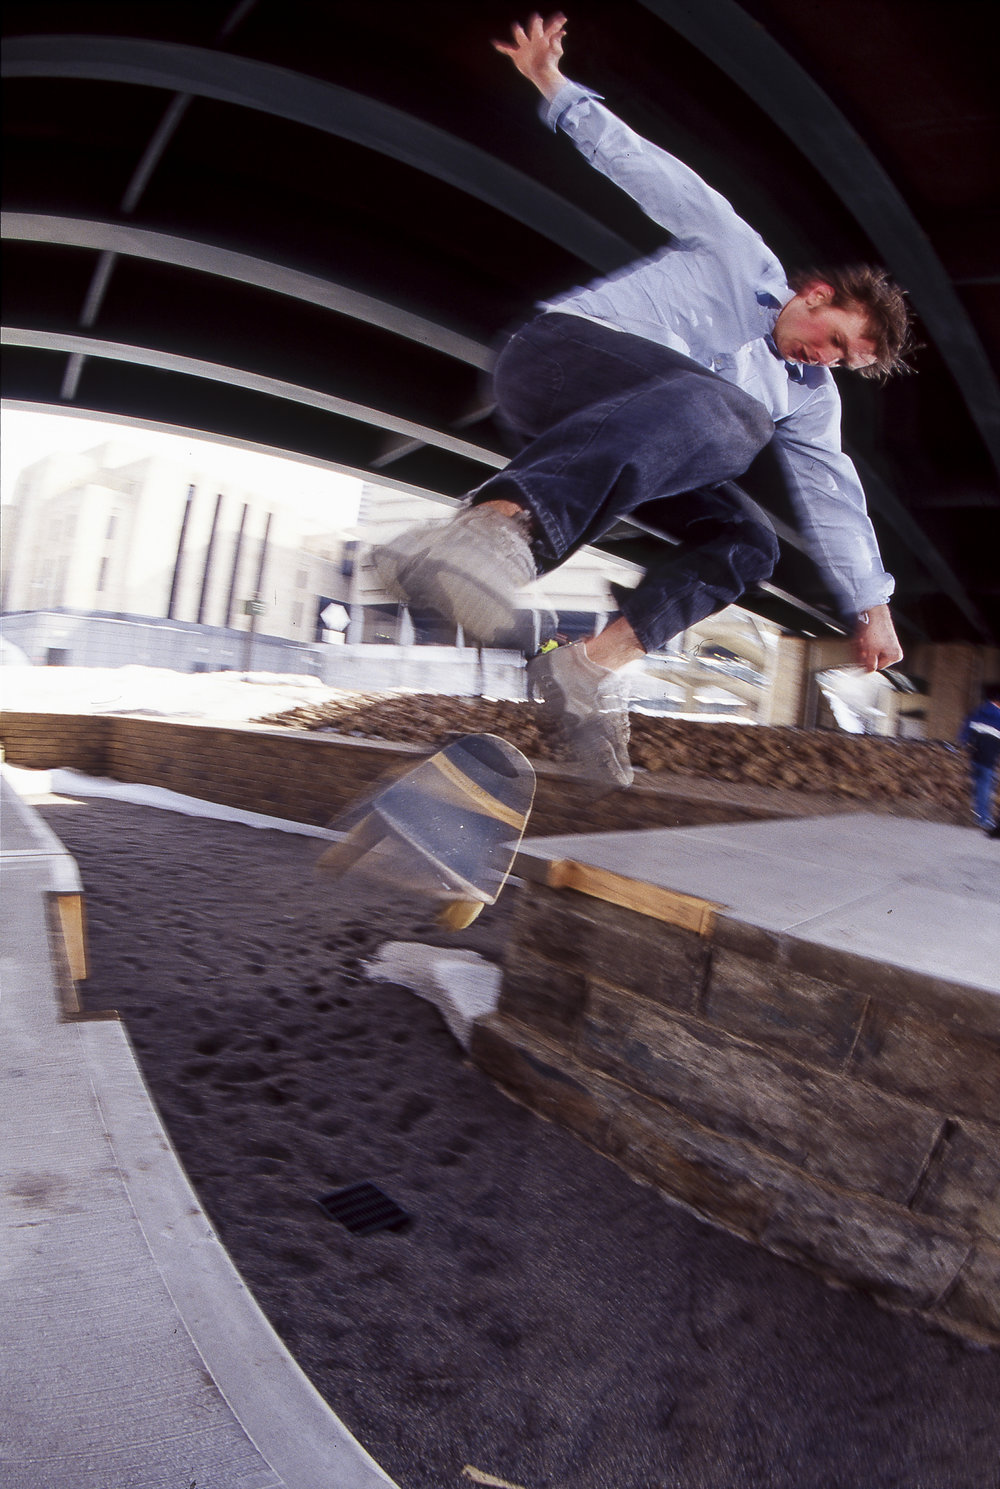 Ben Ragsdale  is one of the smoothest skateboarders to ever come from Minnesota. Backside kickflip.